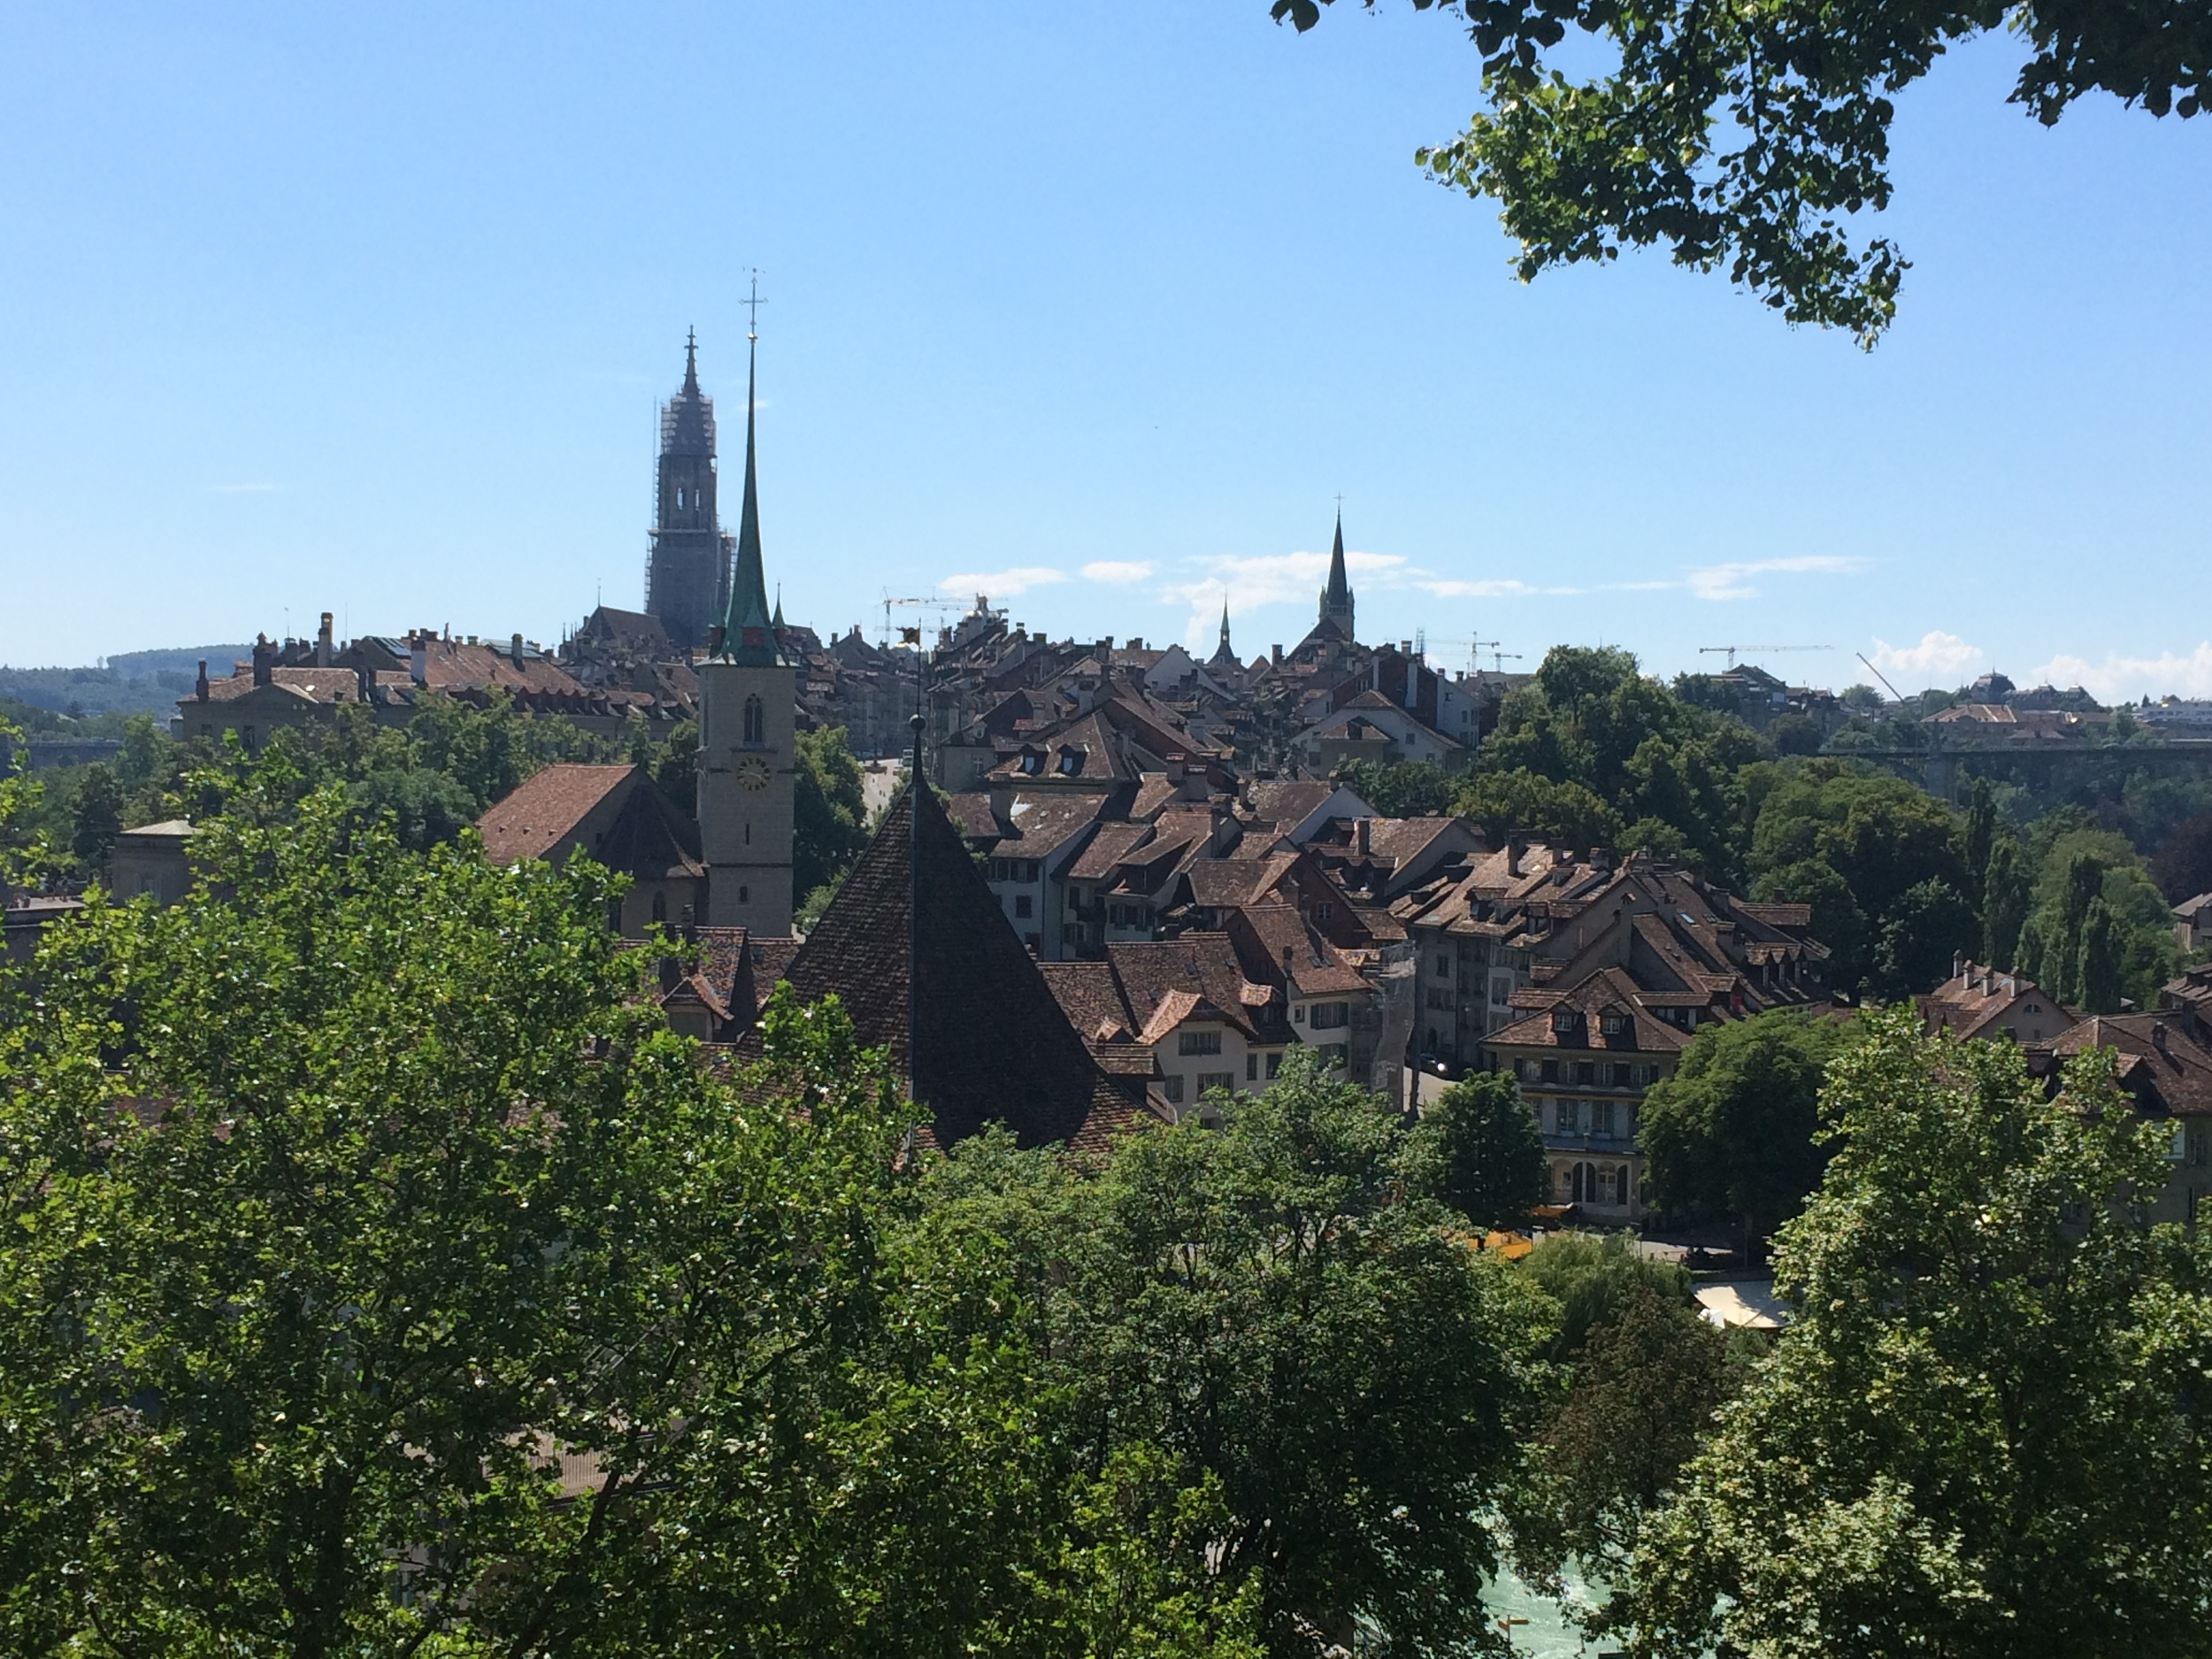 View of Bern from my walk up to visit the Rose Garden.